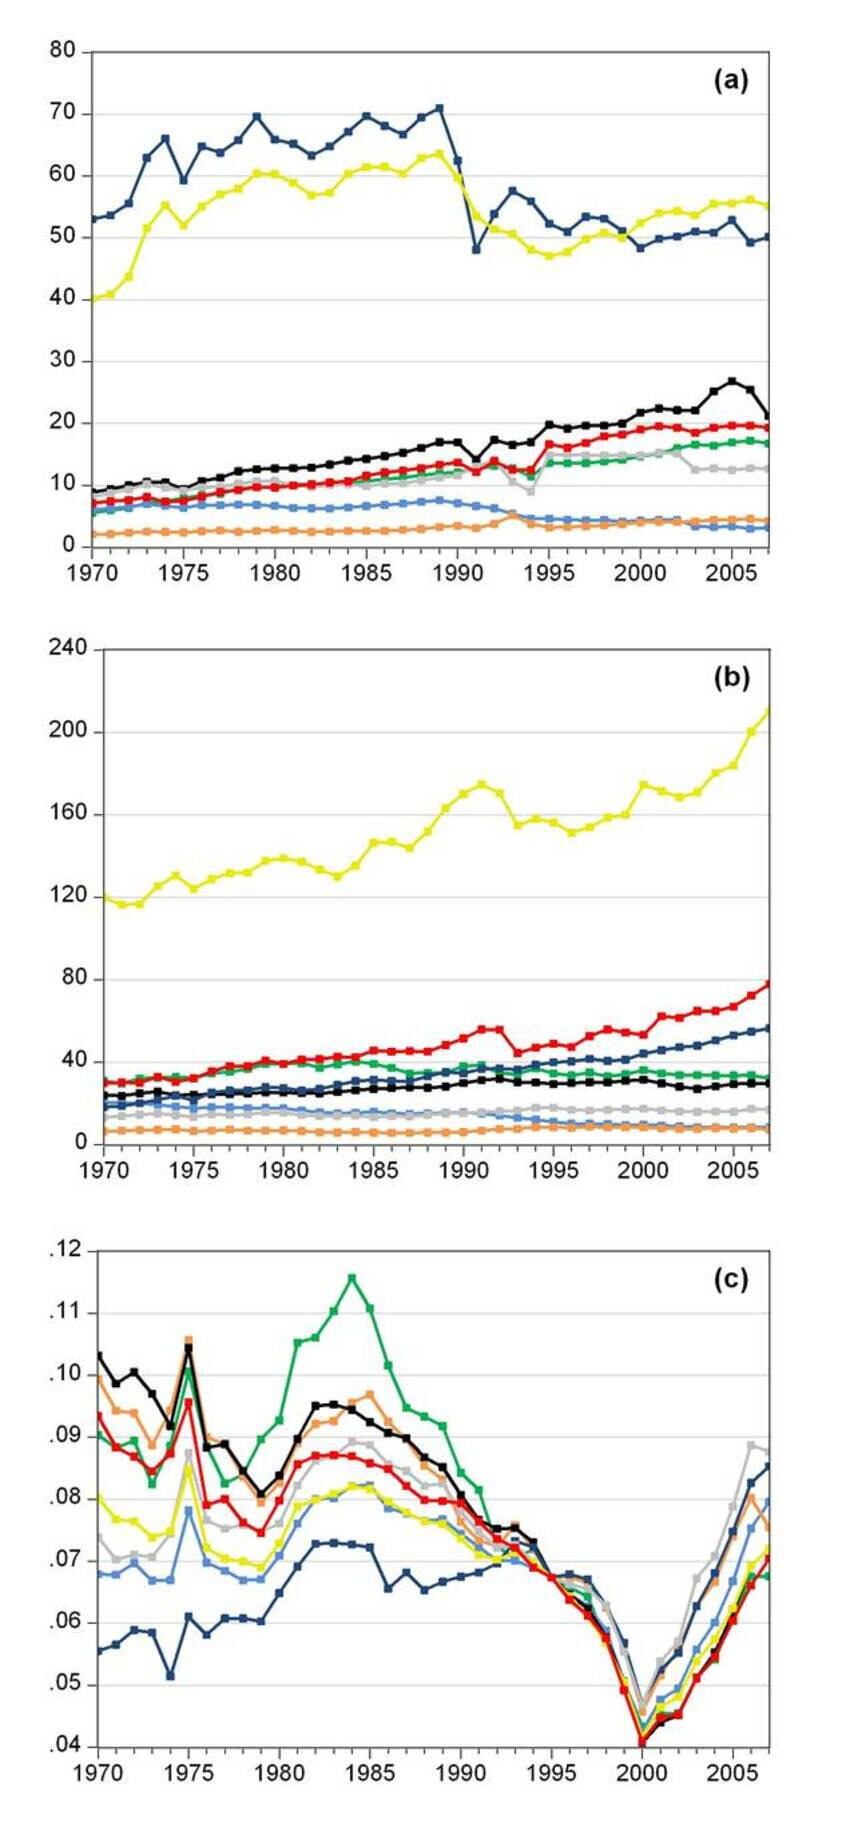 (a) Subsectoral electricity consumption in TWh. (b) Subsectoral value added in billion € at constant (1995) prices. (c) Industrial electricity prices in € per kWh at constant (1995) prices (Sources: IEA/ EU-KLEMS, own illustration)